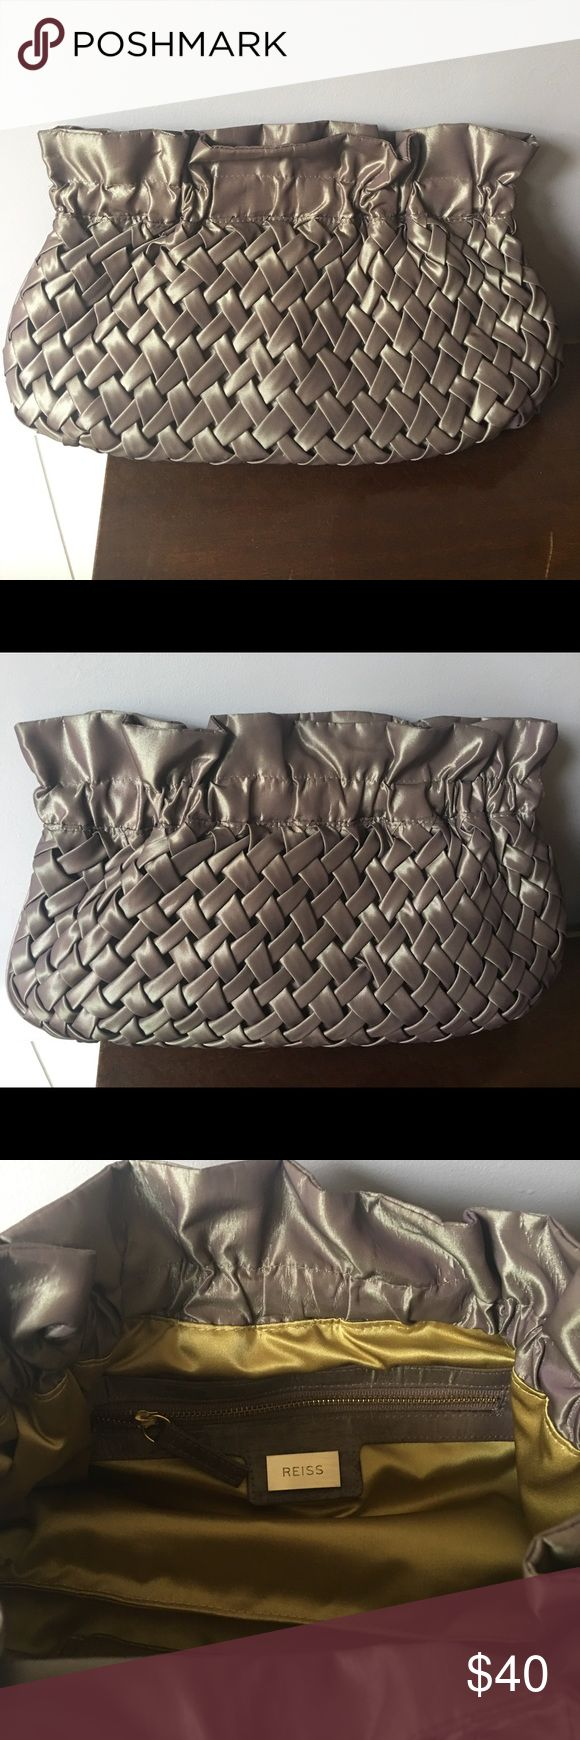 "Reiss clutch 9"" tall x 14"" wide. Barely used. No marks, stains or tears. Closes with a firm magnet lining the top. This is a great clutch in great shape! I bought in NYC and never use it. Reiss Bags Clutches & Wristlets"